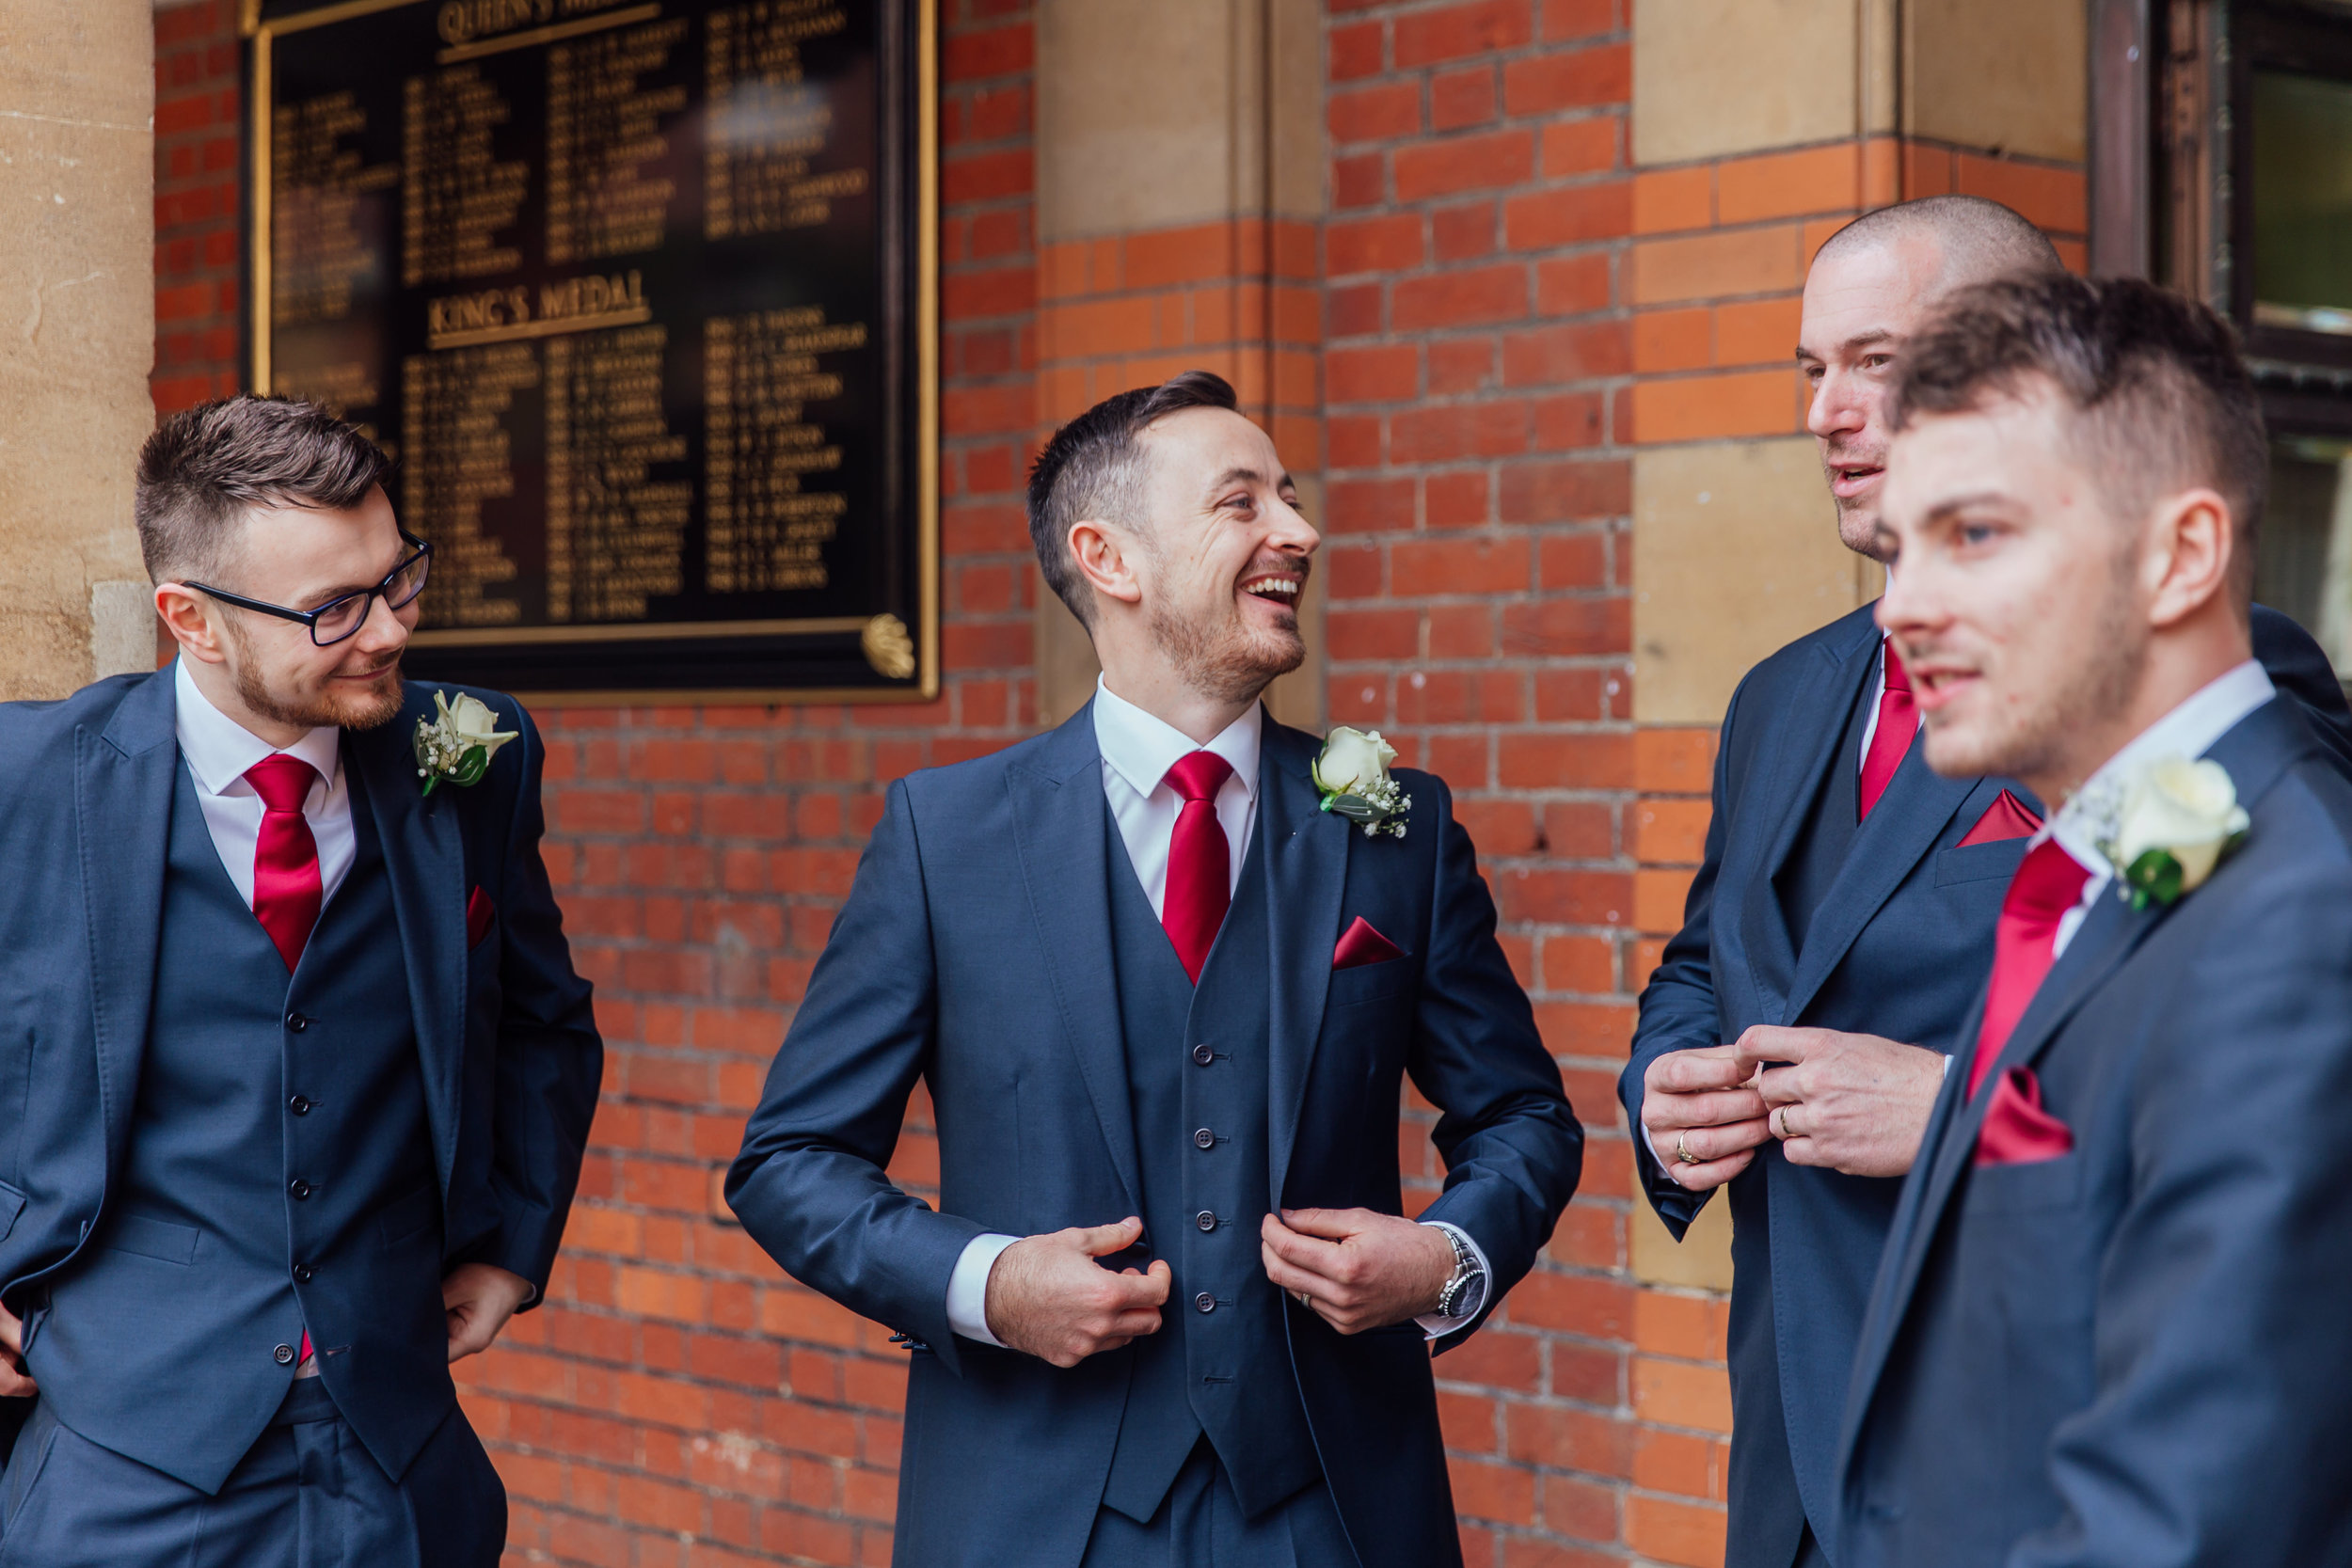 groom-getting-ready-at-welling-college-berkshire-wedding / Amy-james-photography / hampshire-wedding-photographer